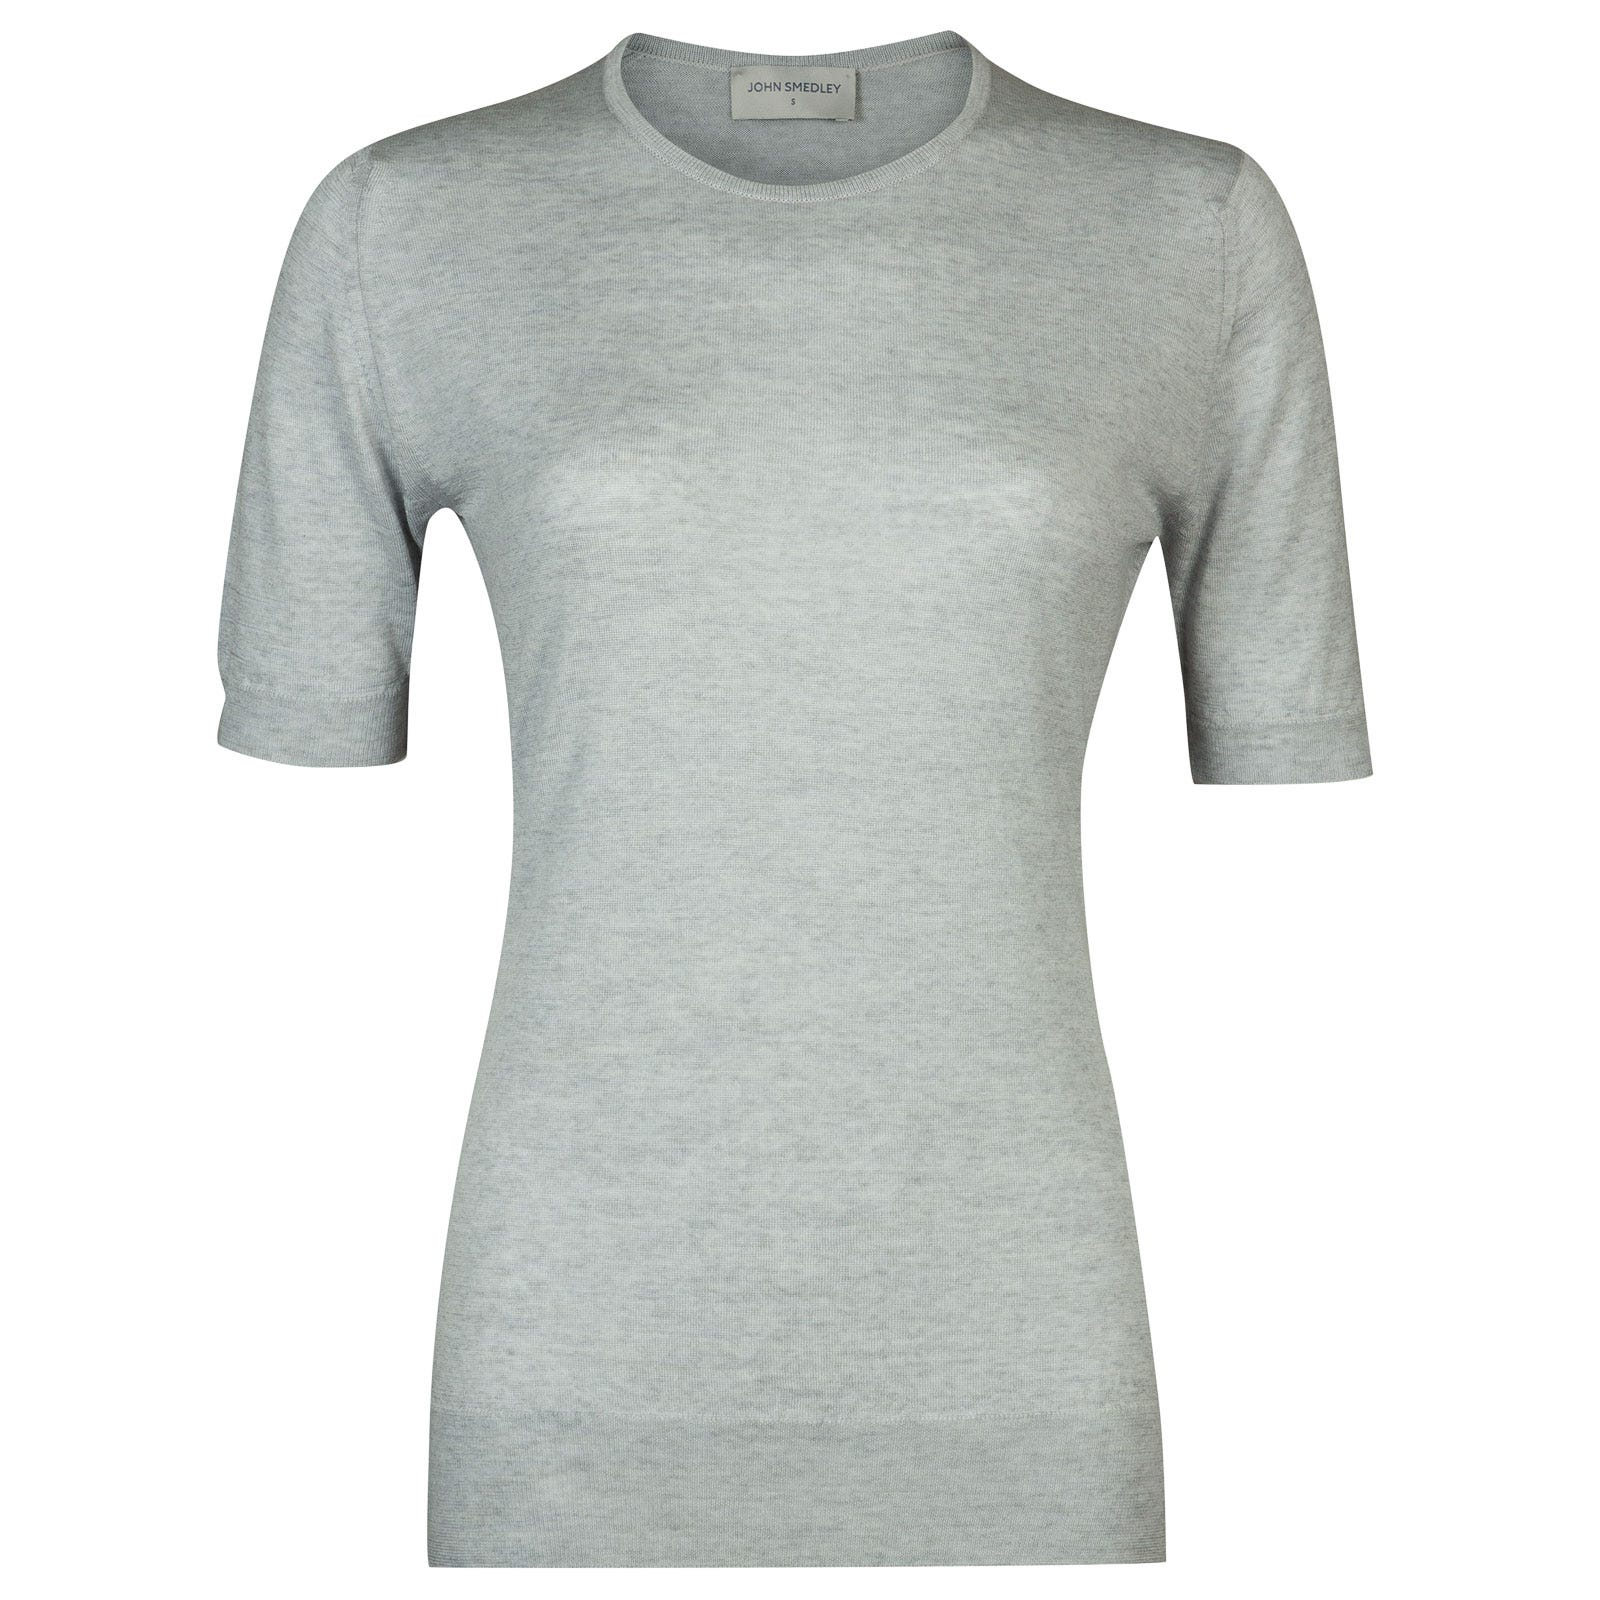 John Smedley rietta Merino Wool Sweater in Bardot Grey-XL